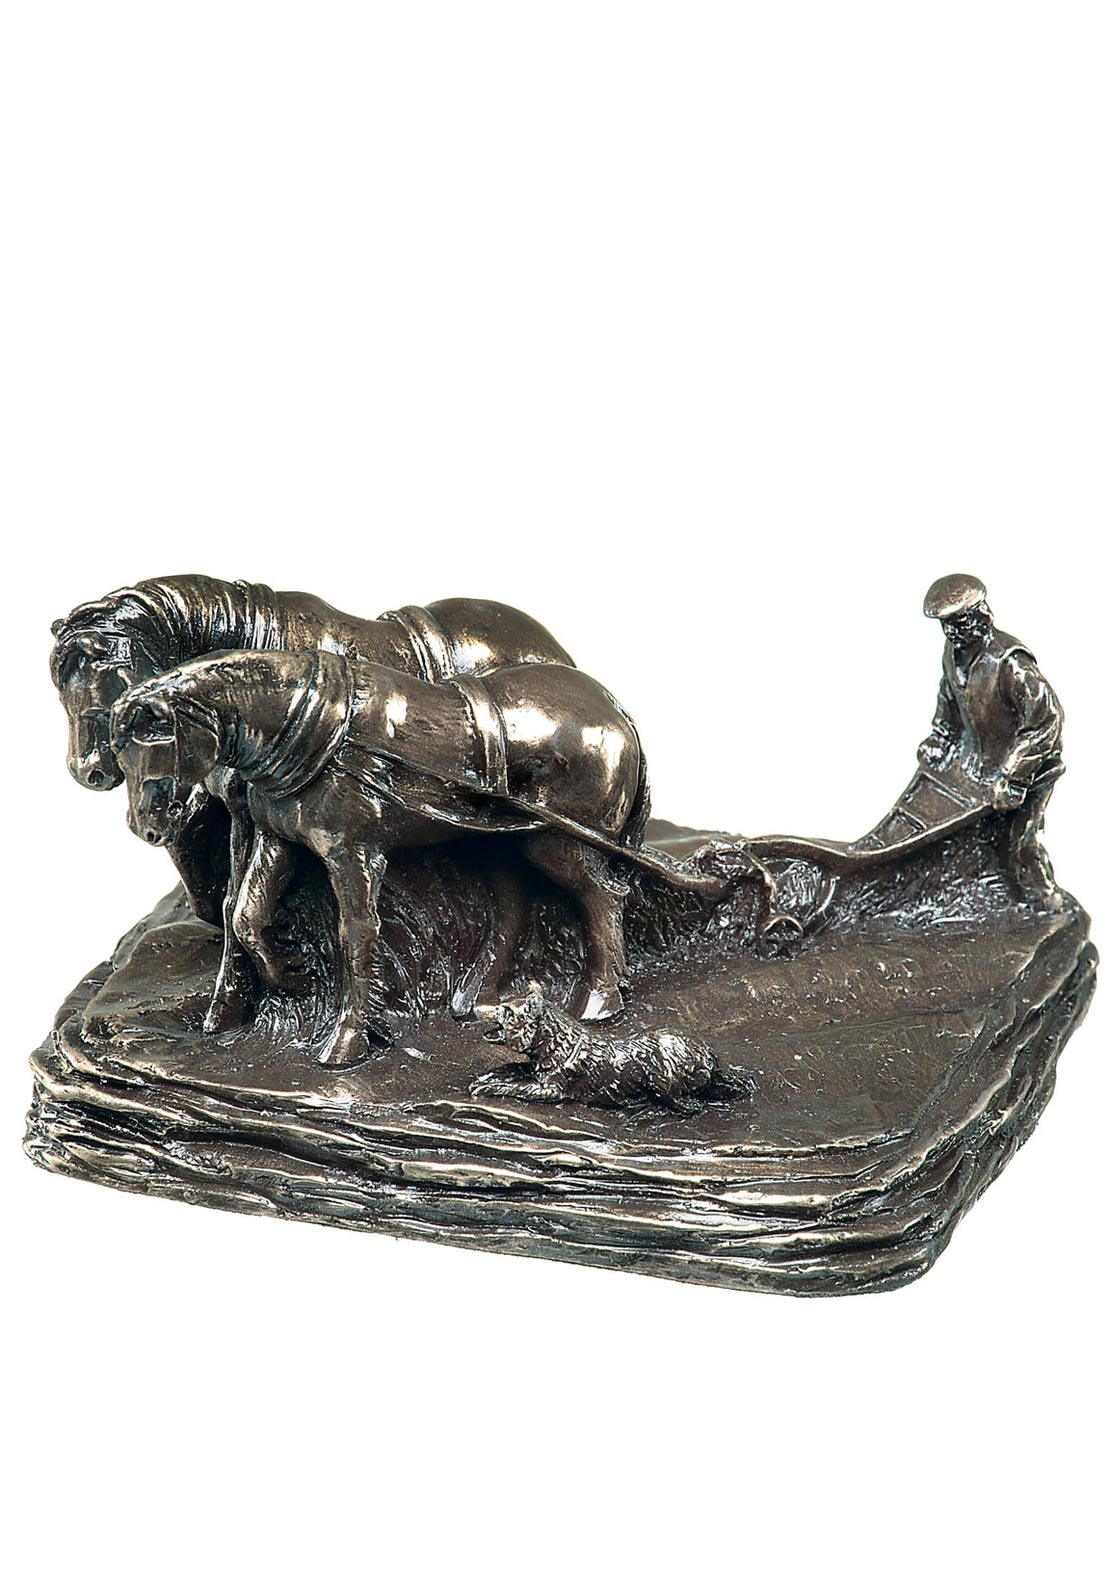 Genesis Irish Ploughman Ornament, Bronze